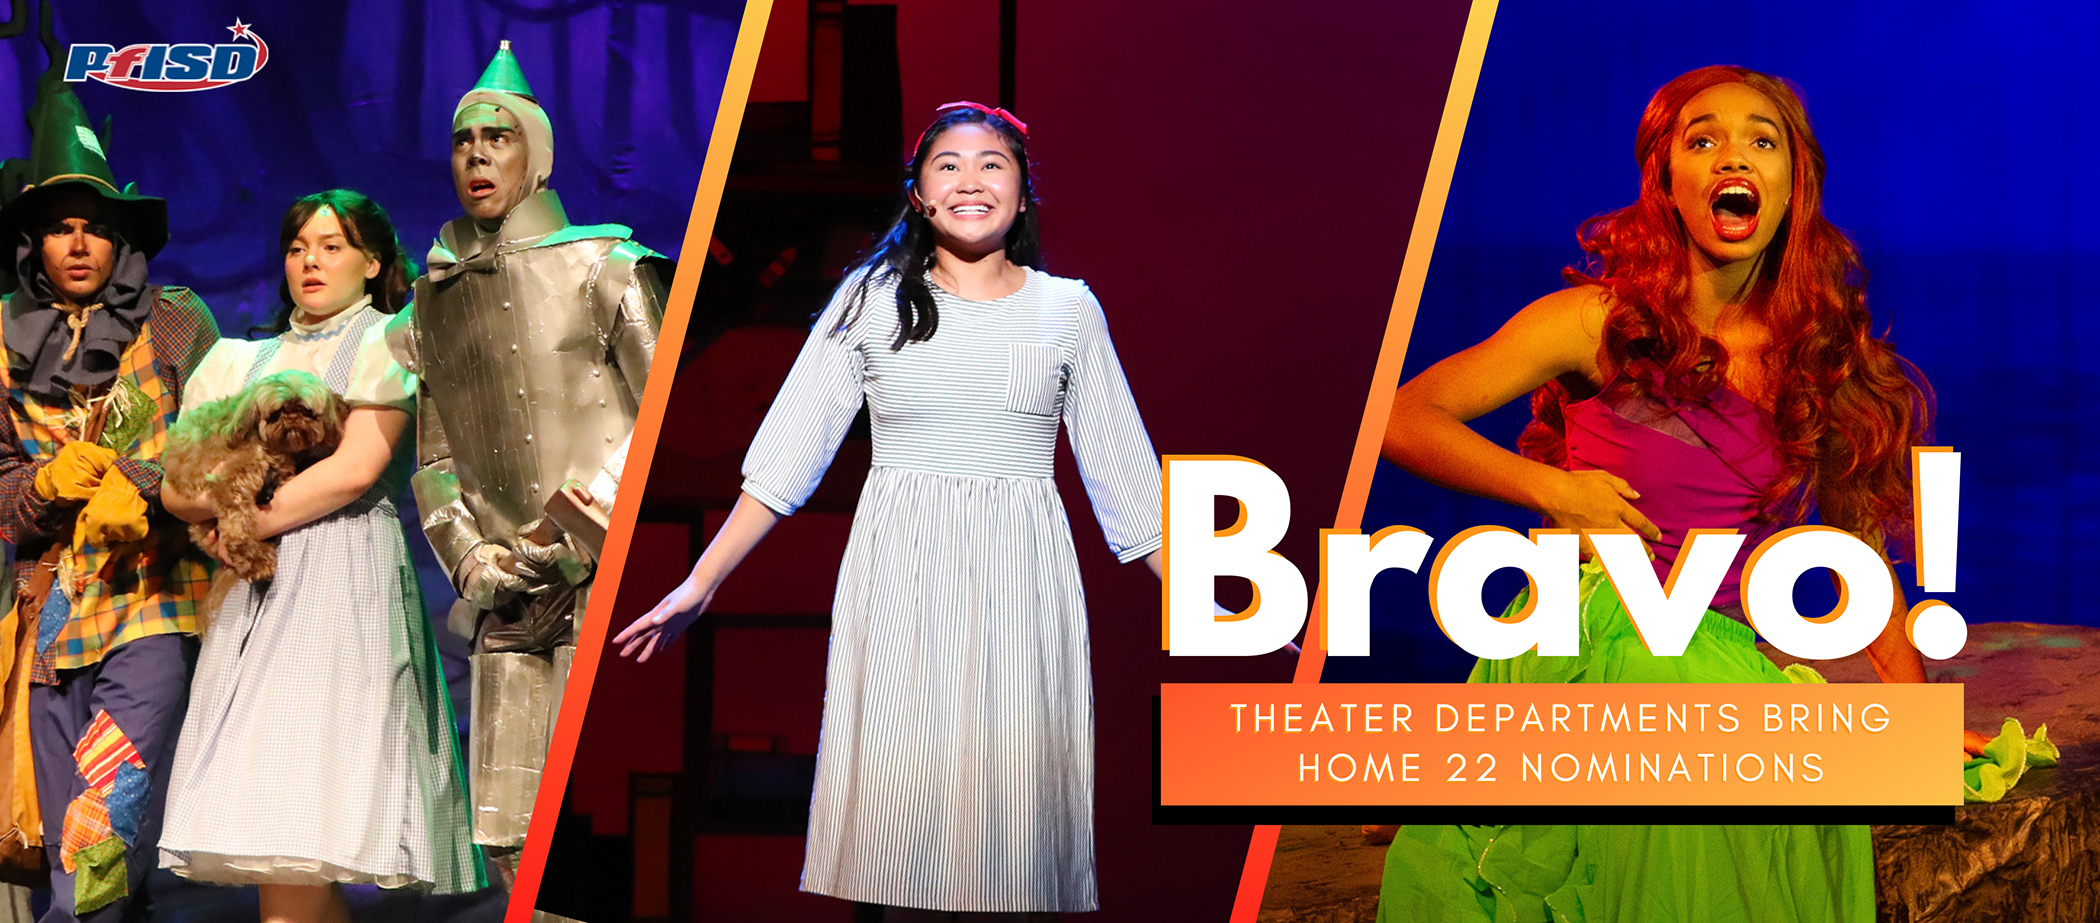 Bravo! Theater departments bring home 22 nominations